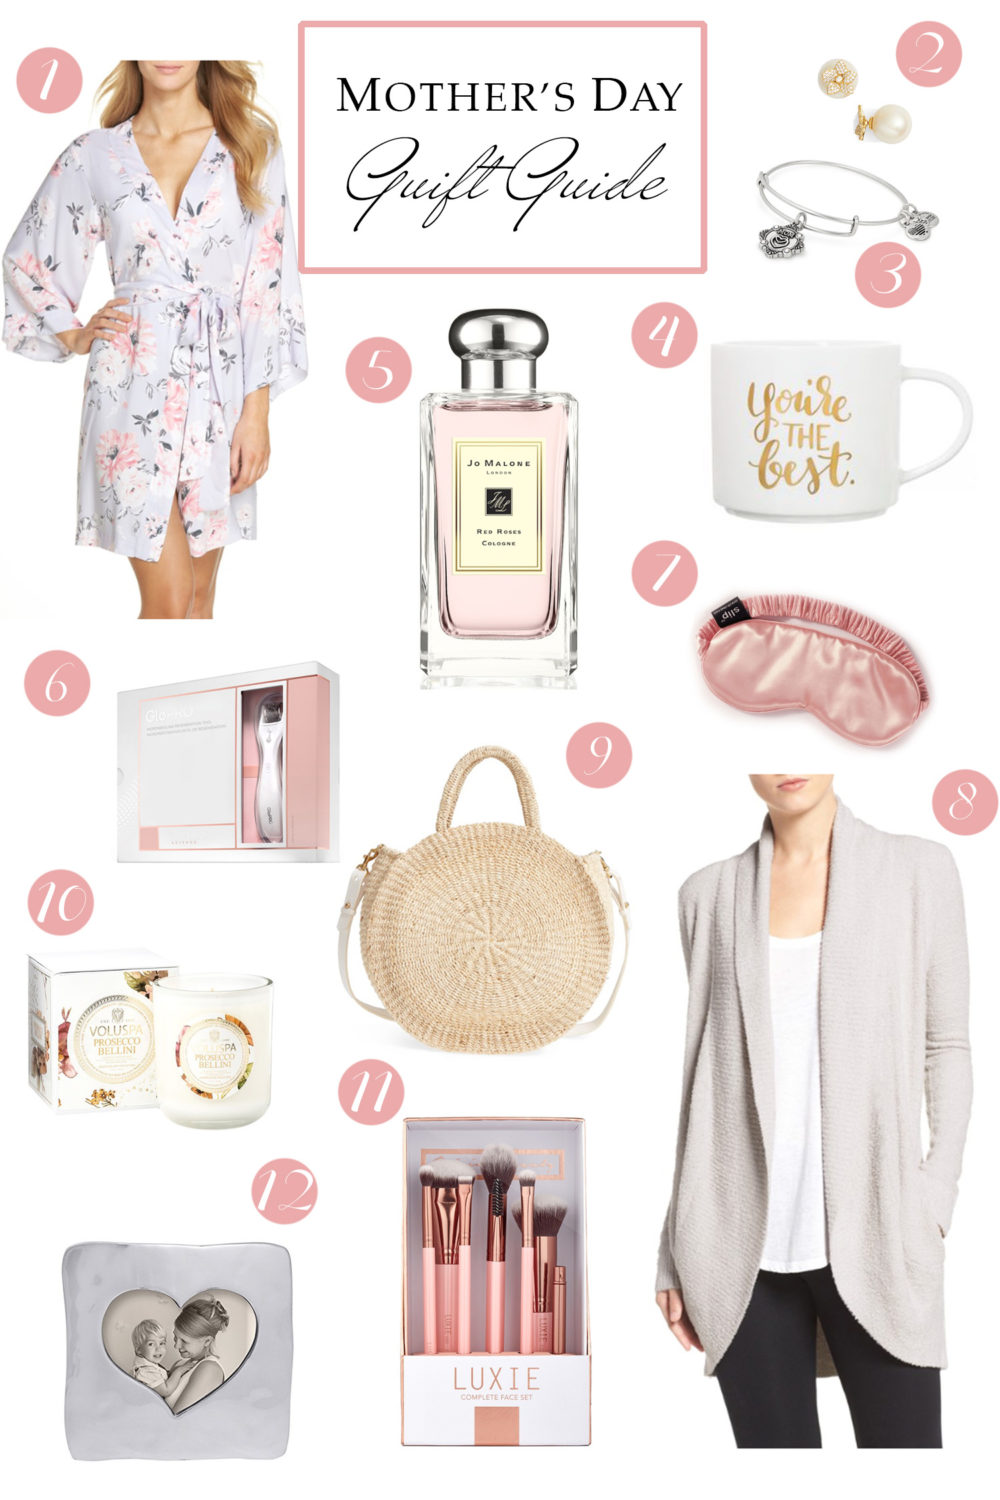 Best Gifts for Mother's Day | Mother's Day Gift Guide